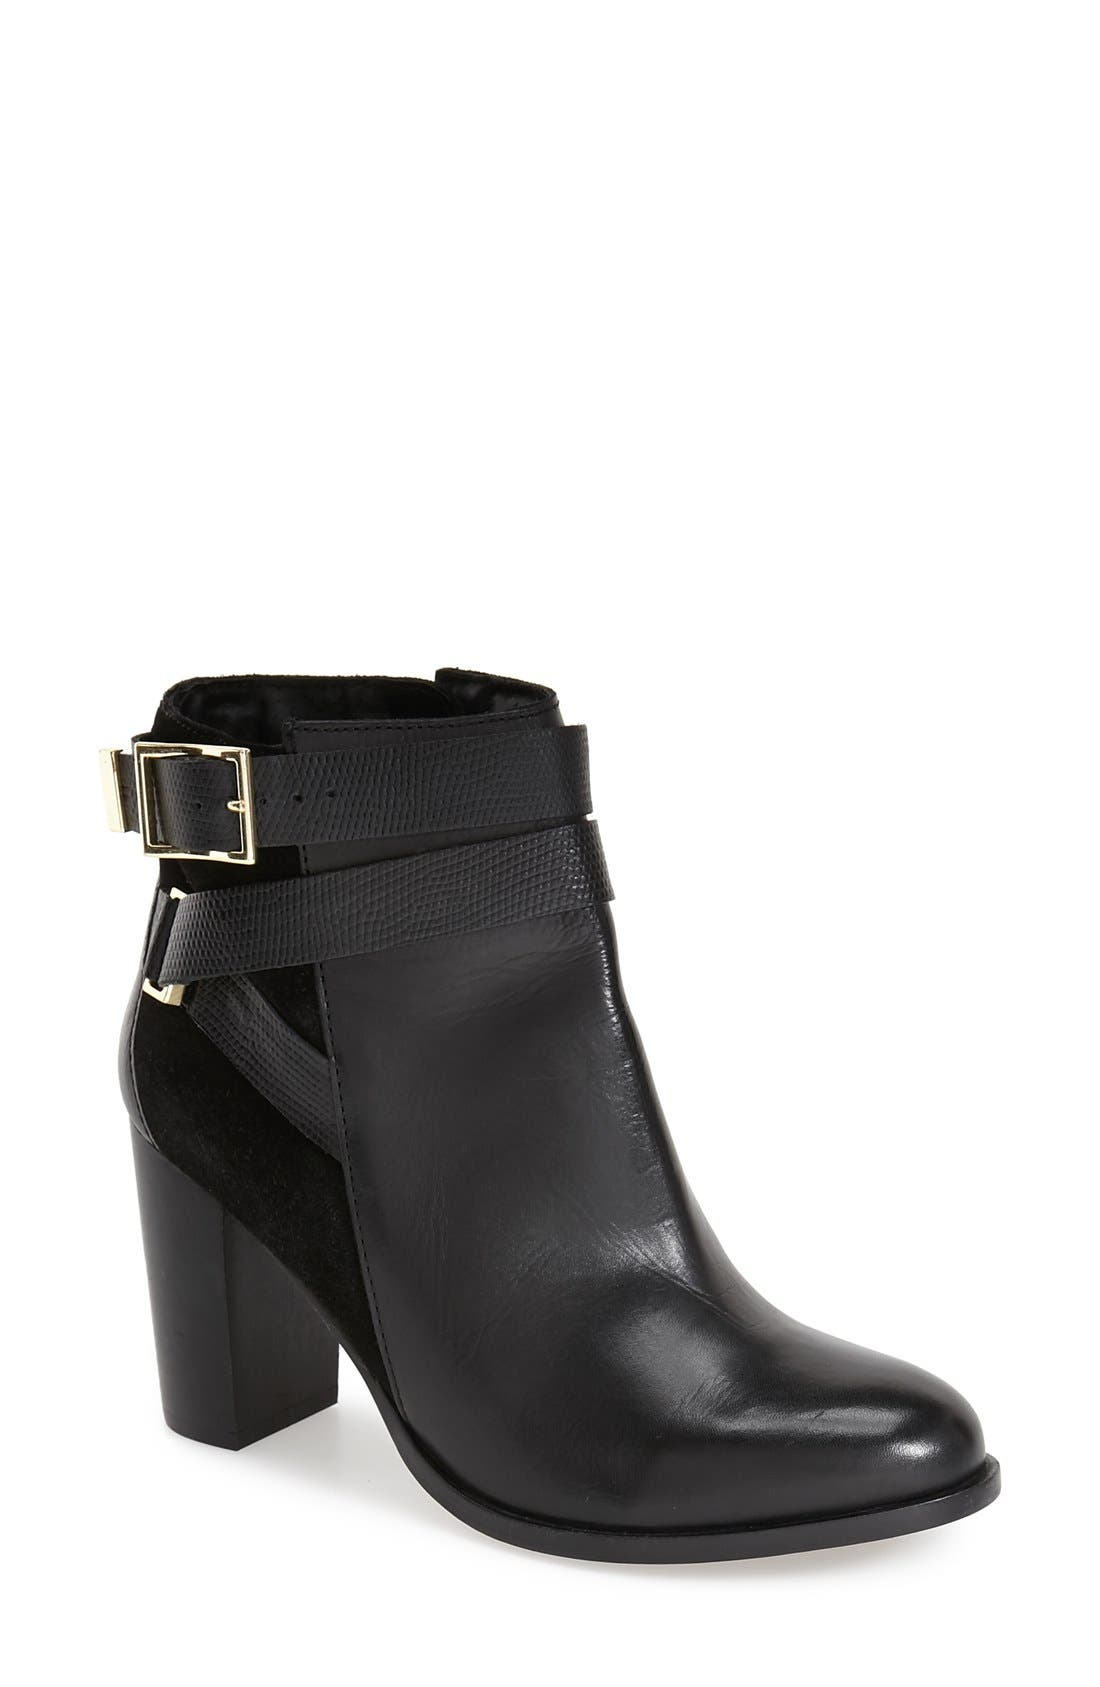 TOPSHOP 'Harper Buckle' Ankle Boot, Main, color, 001